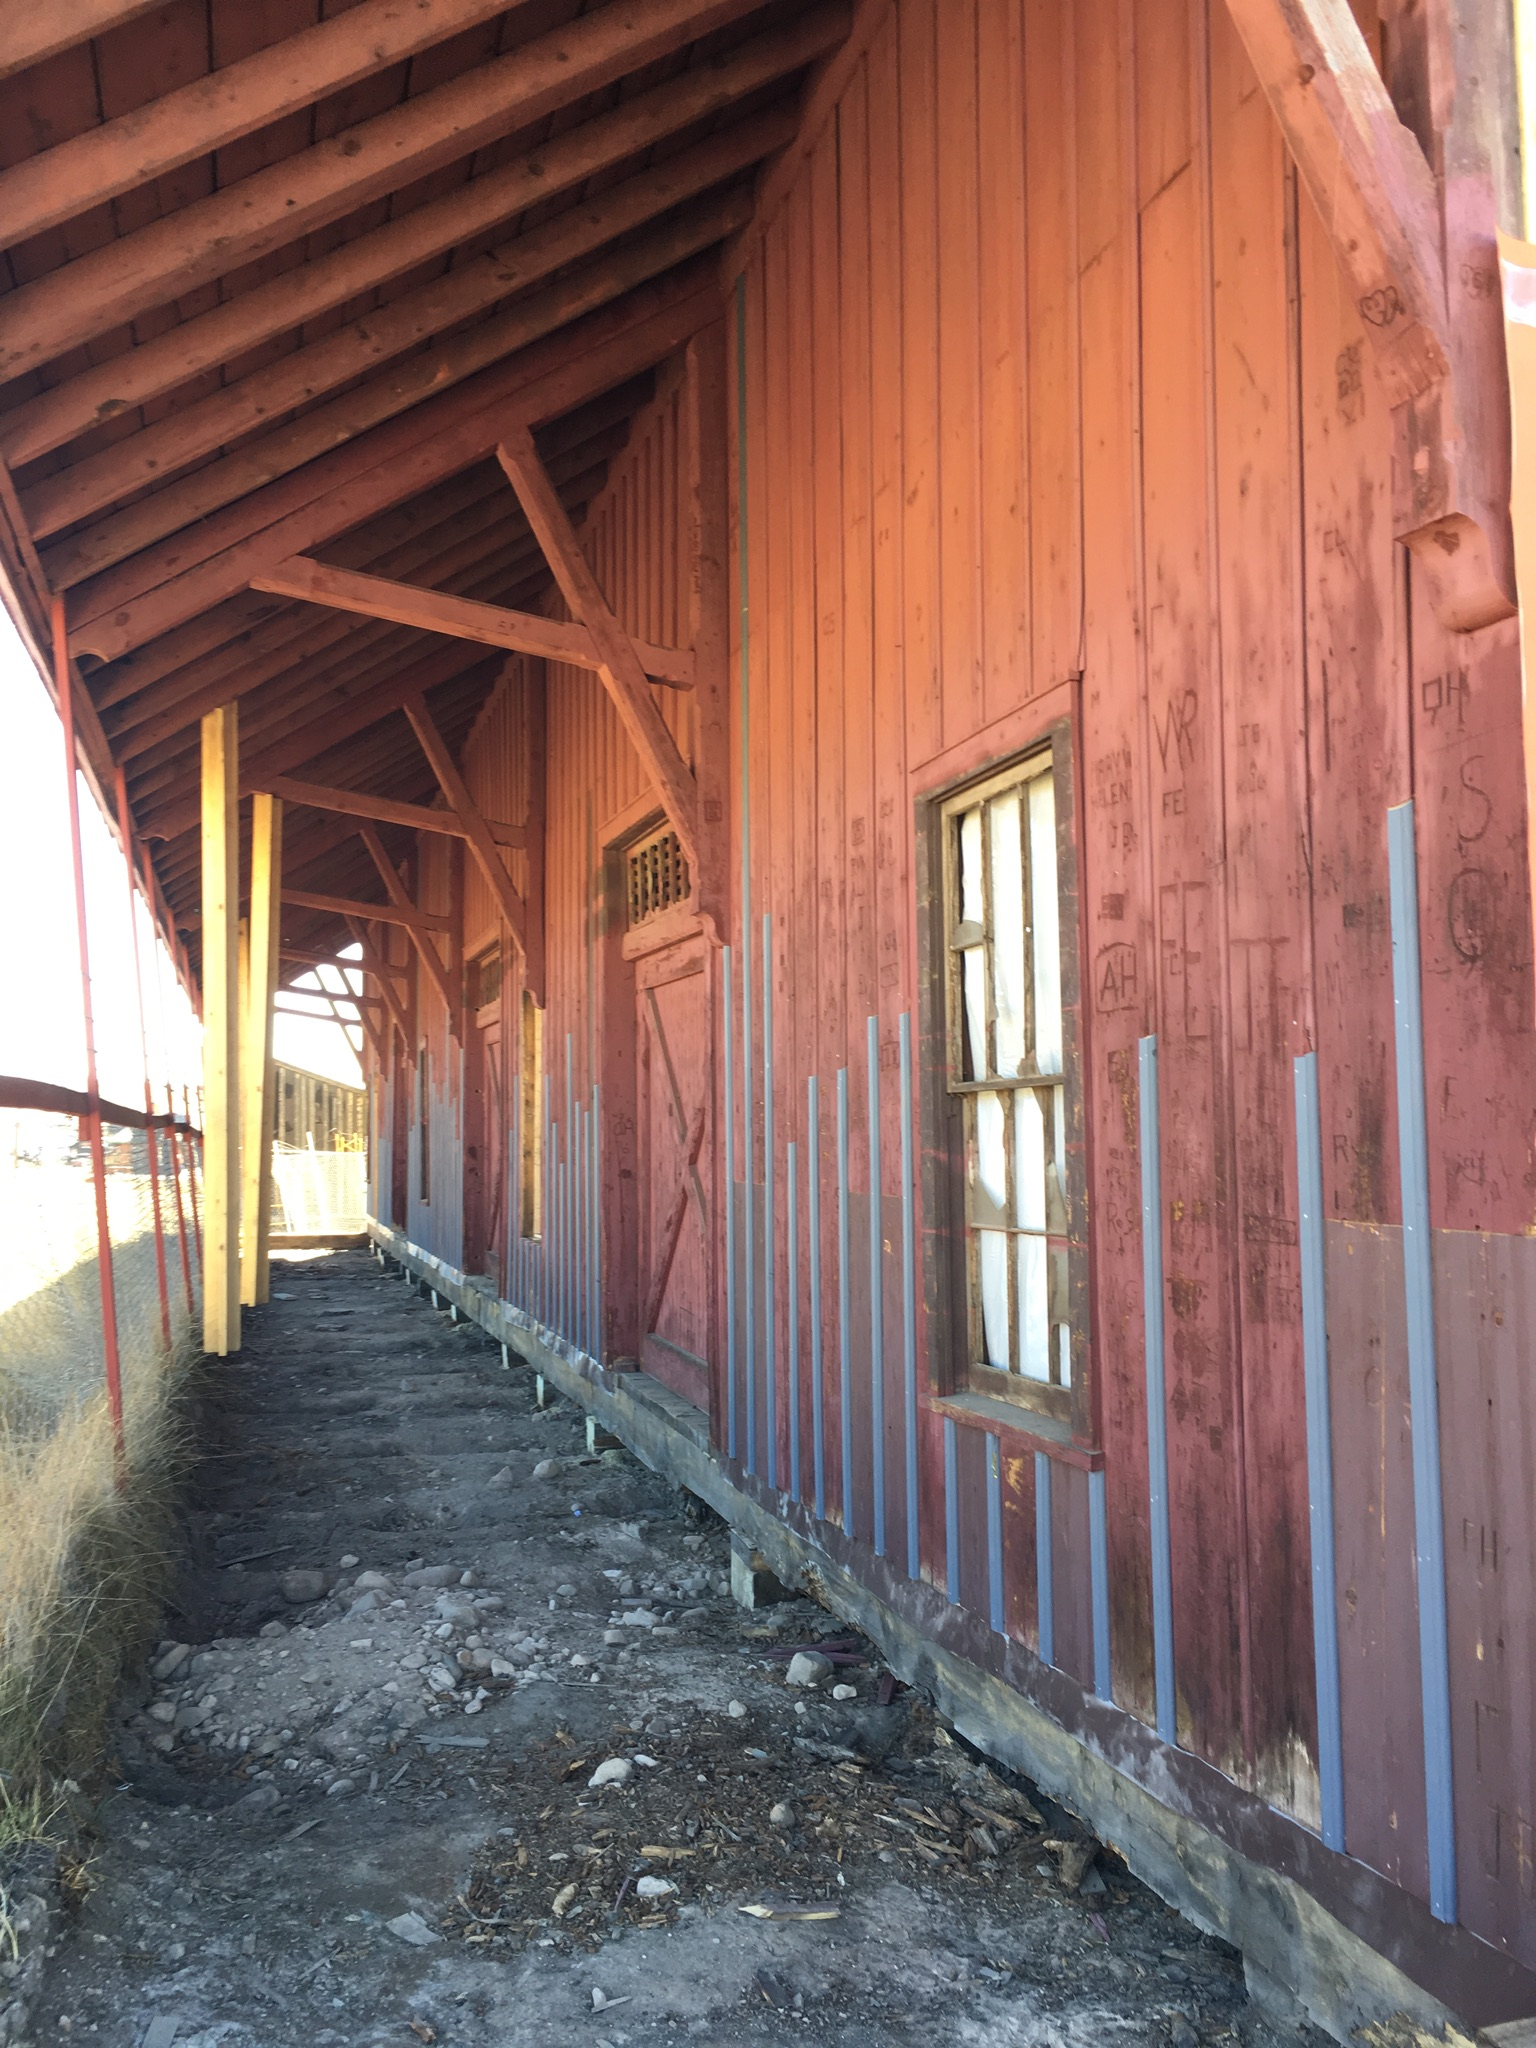 Where materials could be salvaged, they were! The East dock has an extensive eve (seen here) with gorgeous brackets. This saved much of the siding and anything that needed replacing received original materials back in it's place.